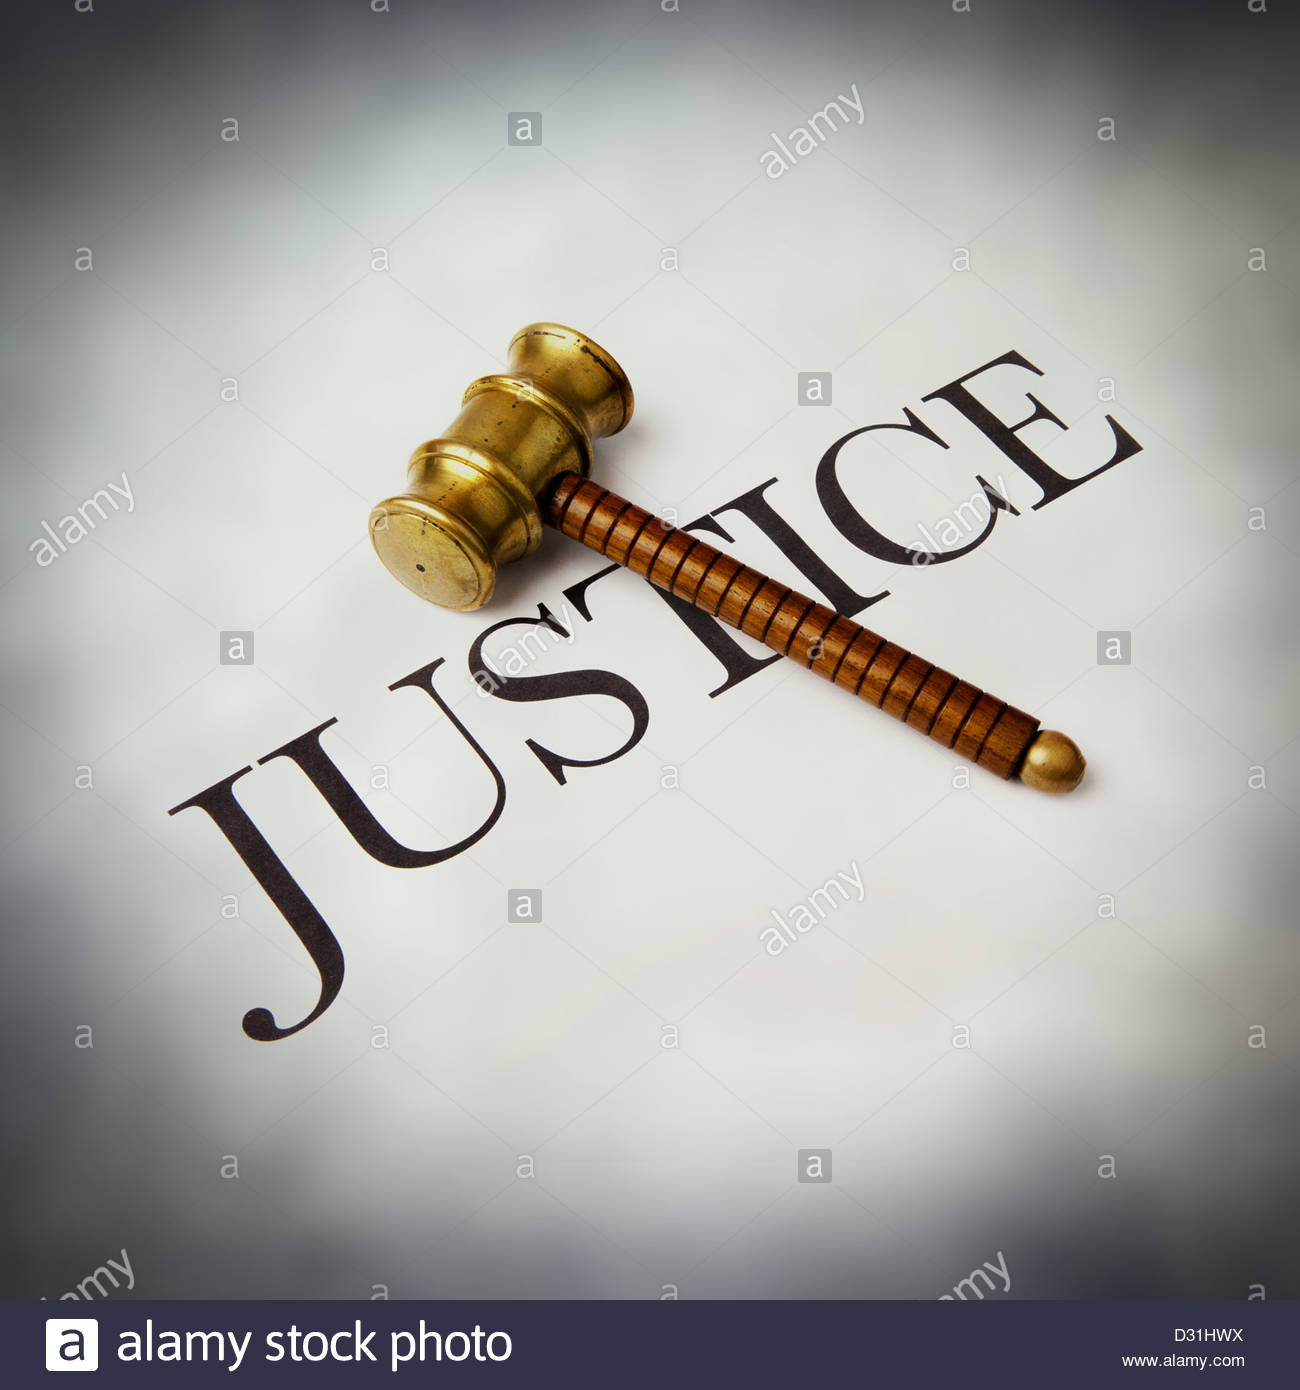 justice - Stock Image